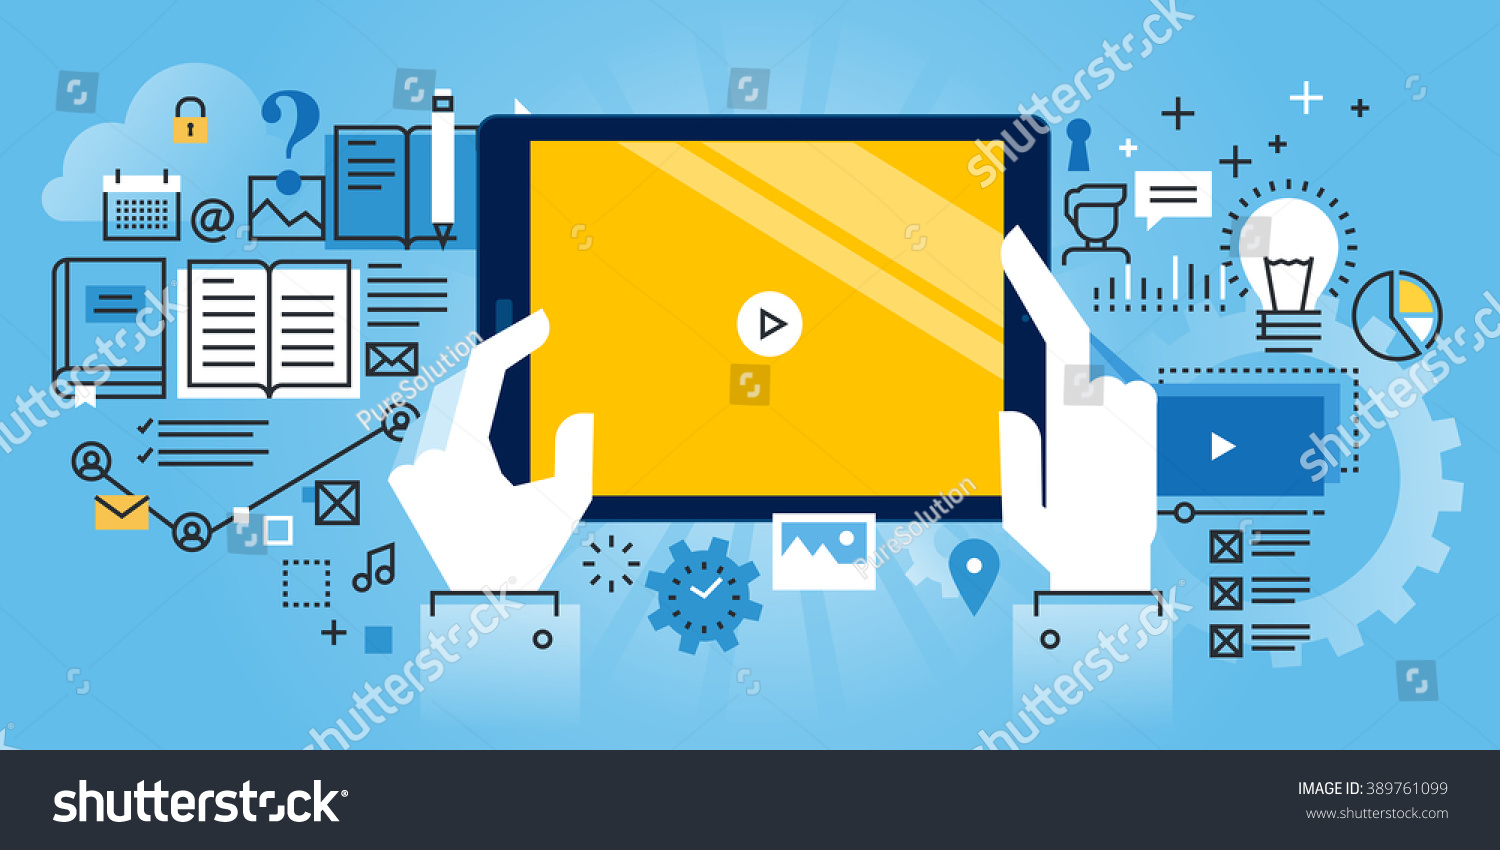 Flat Line Design Website Banner Online Stock Vector Royalty Free Engineering Tutorials Oneline Diagrams Of Education Video Training And Courses